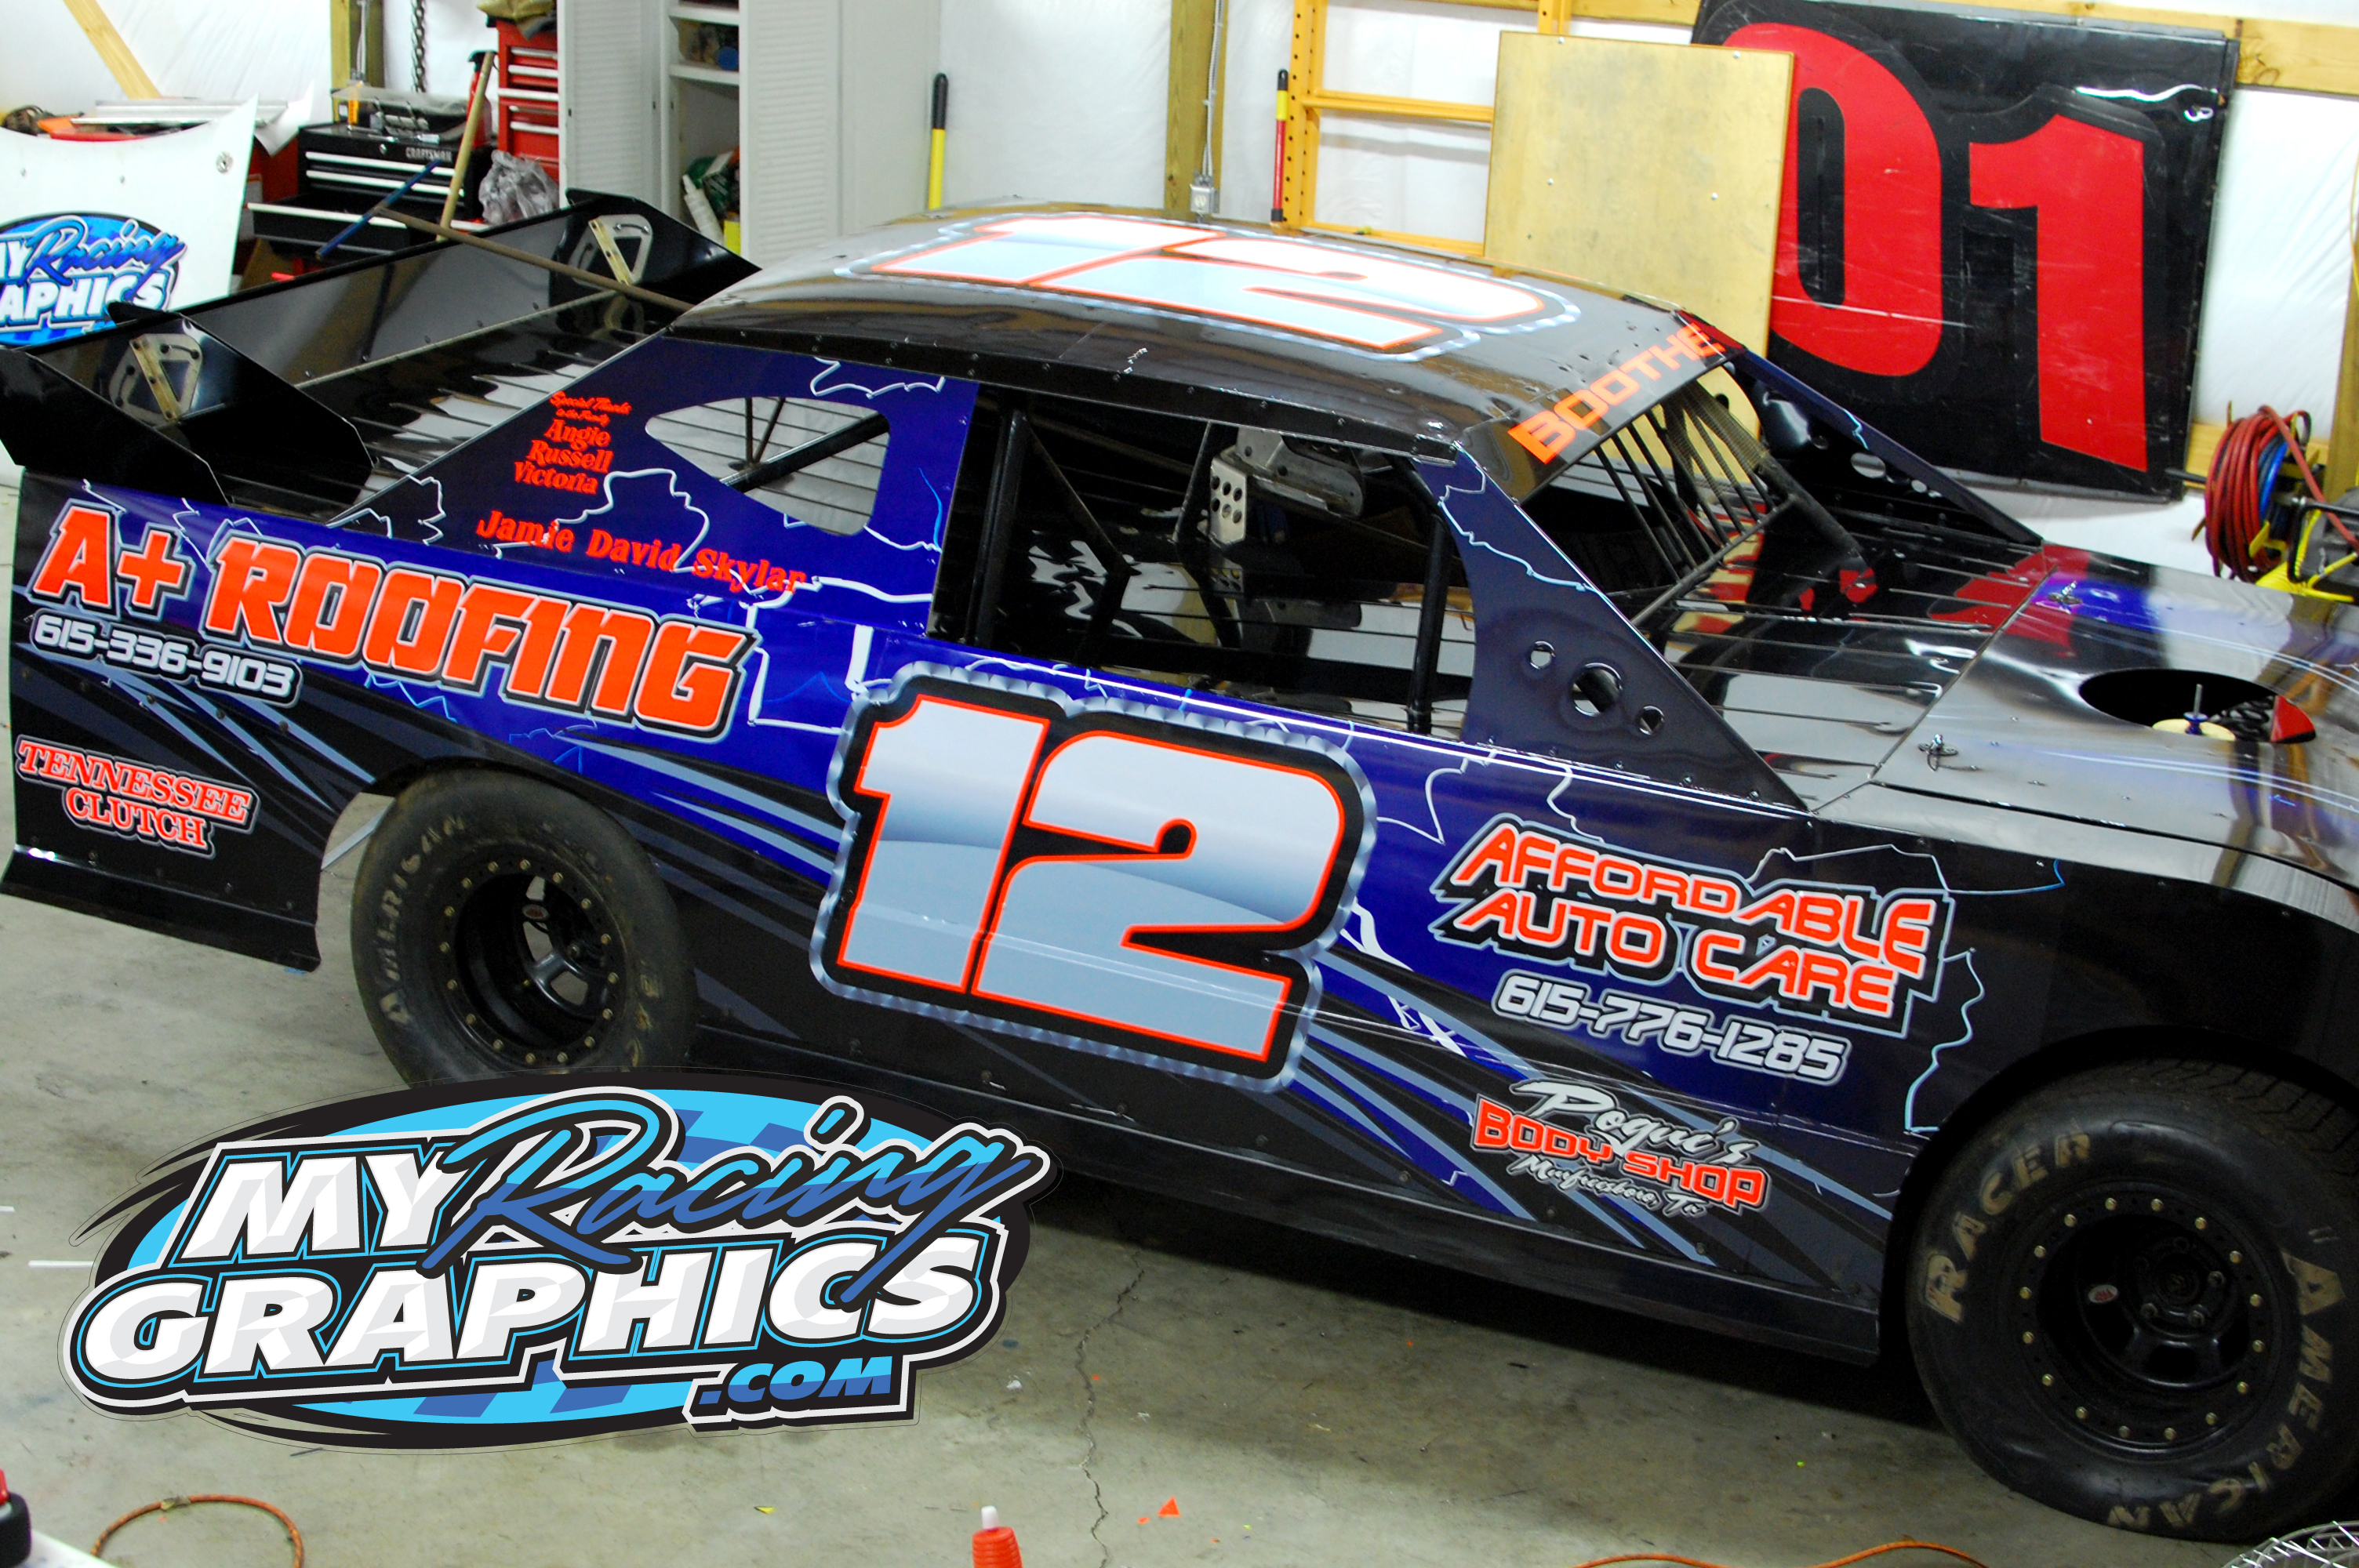 My Racing Graphics s Lettering race cars